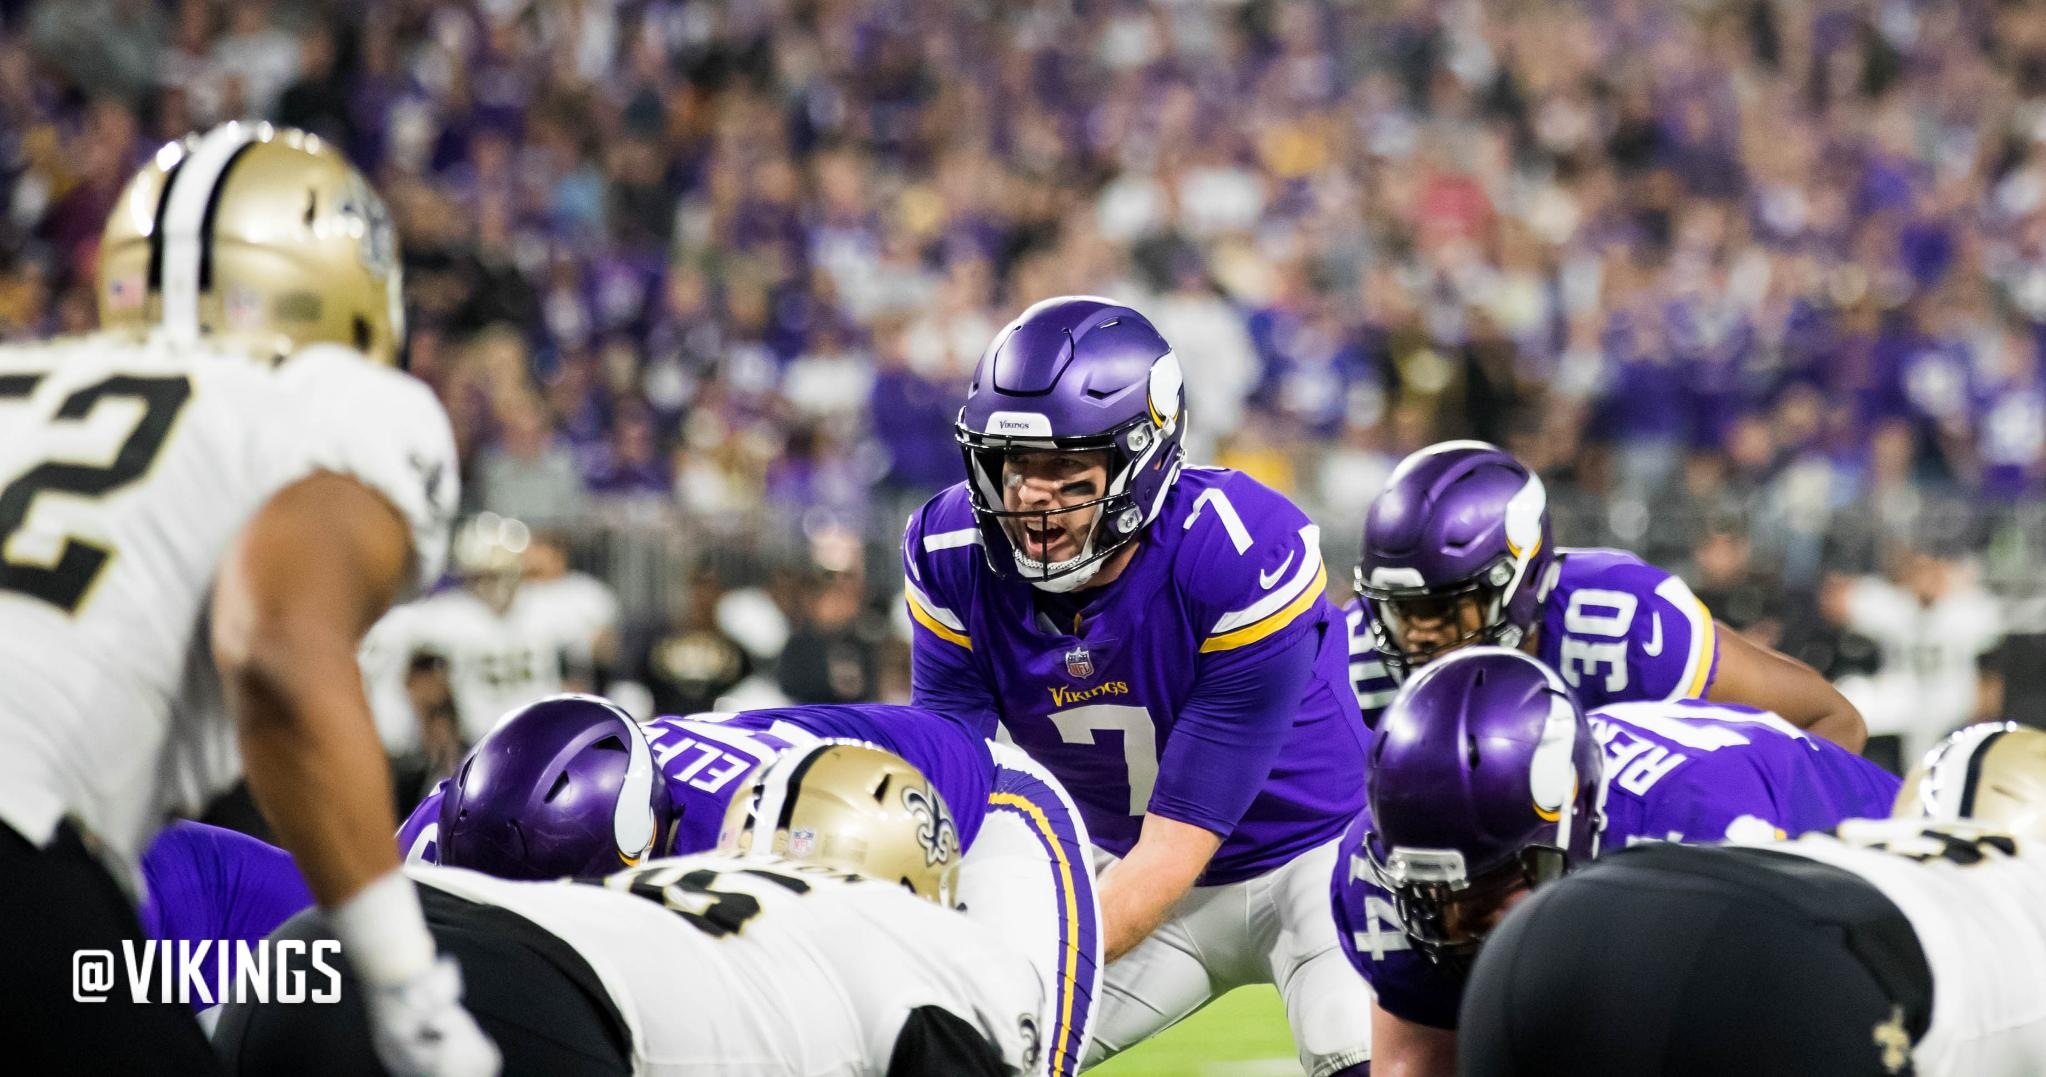 The #Vikings are facing one of the toughest decisions in the NFL this offseason.   ��: https://t.co/VLaLLhXHjl https://t.co/tzMce5YOhs